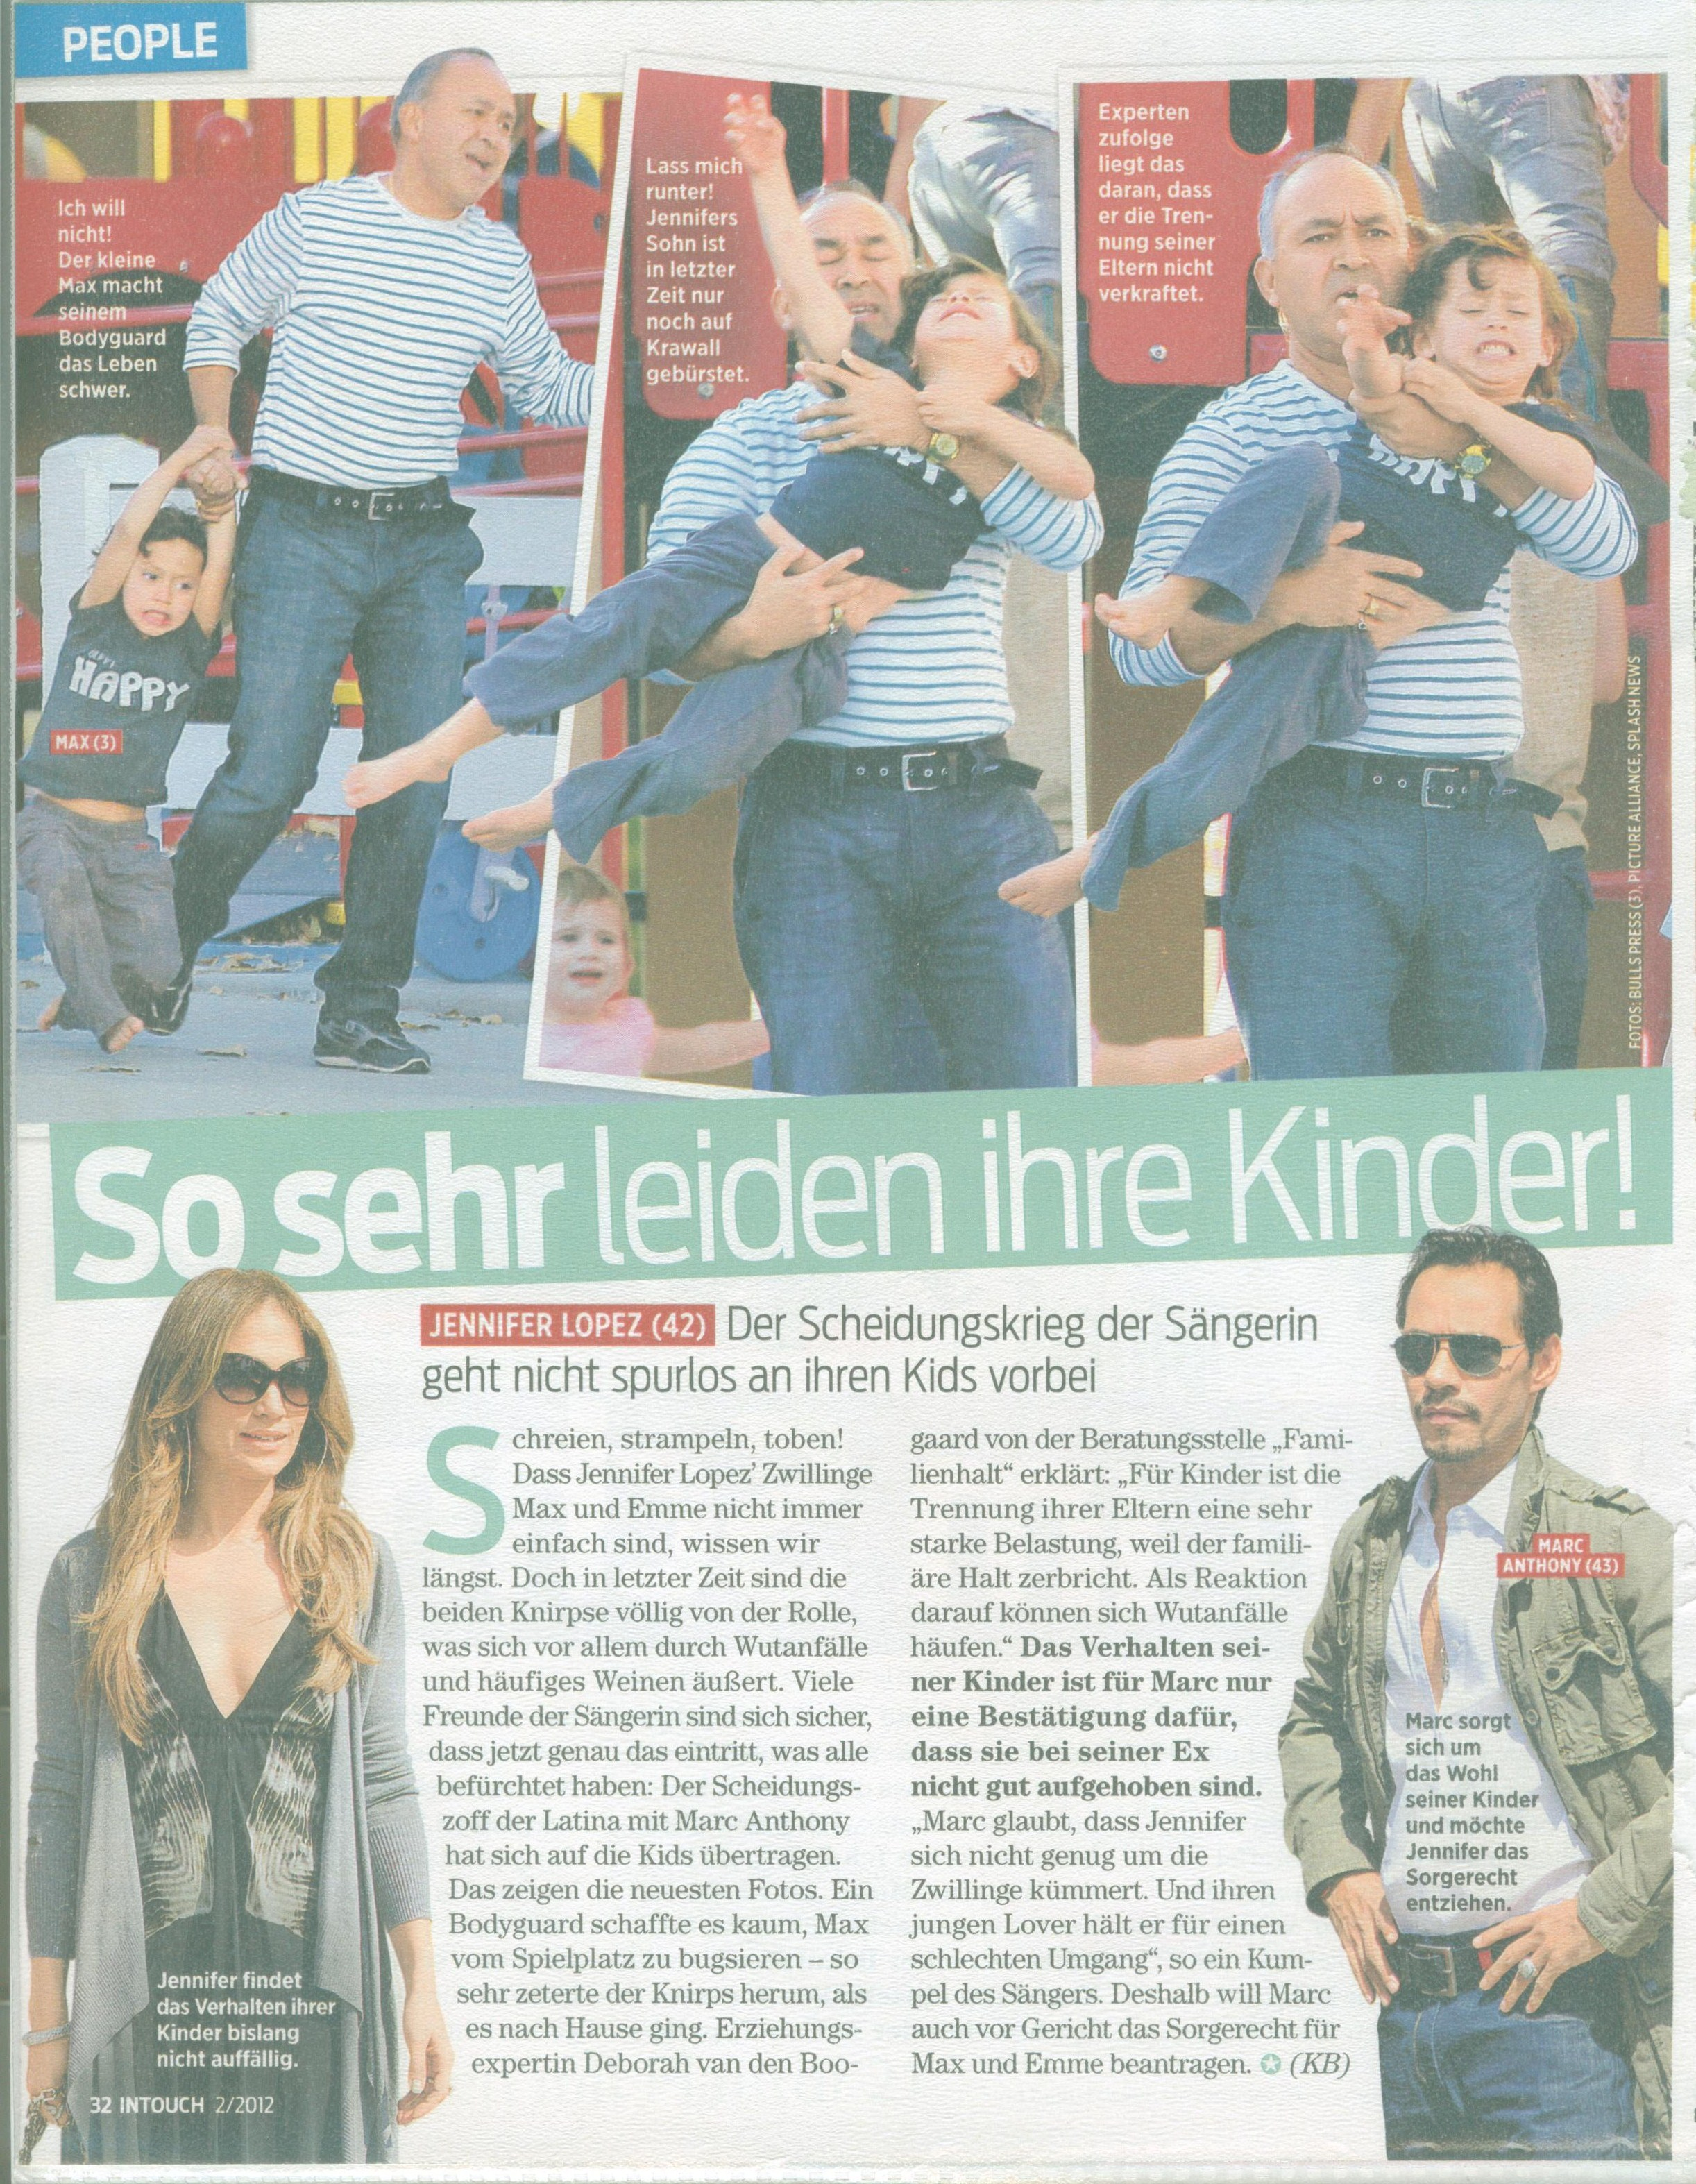 intouch022012.jpg